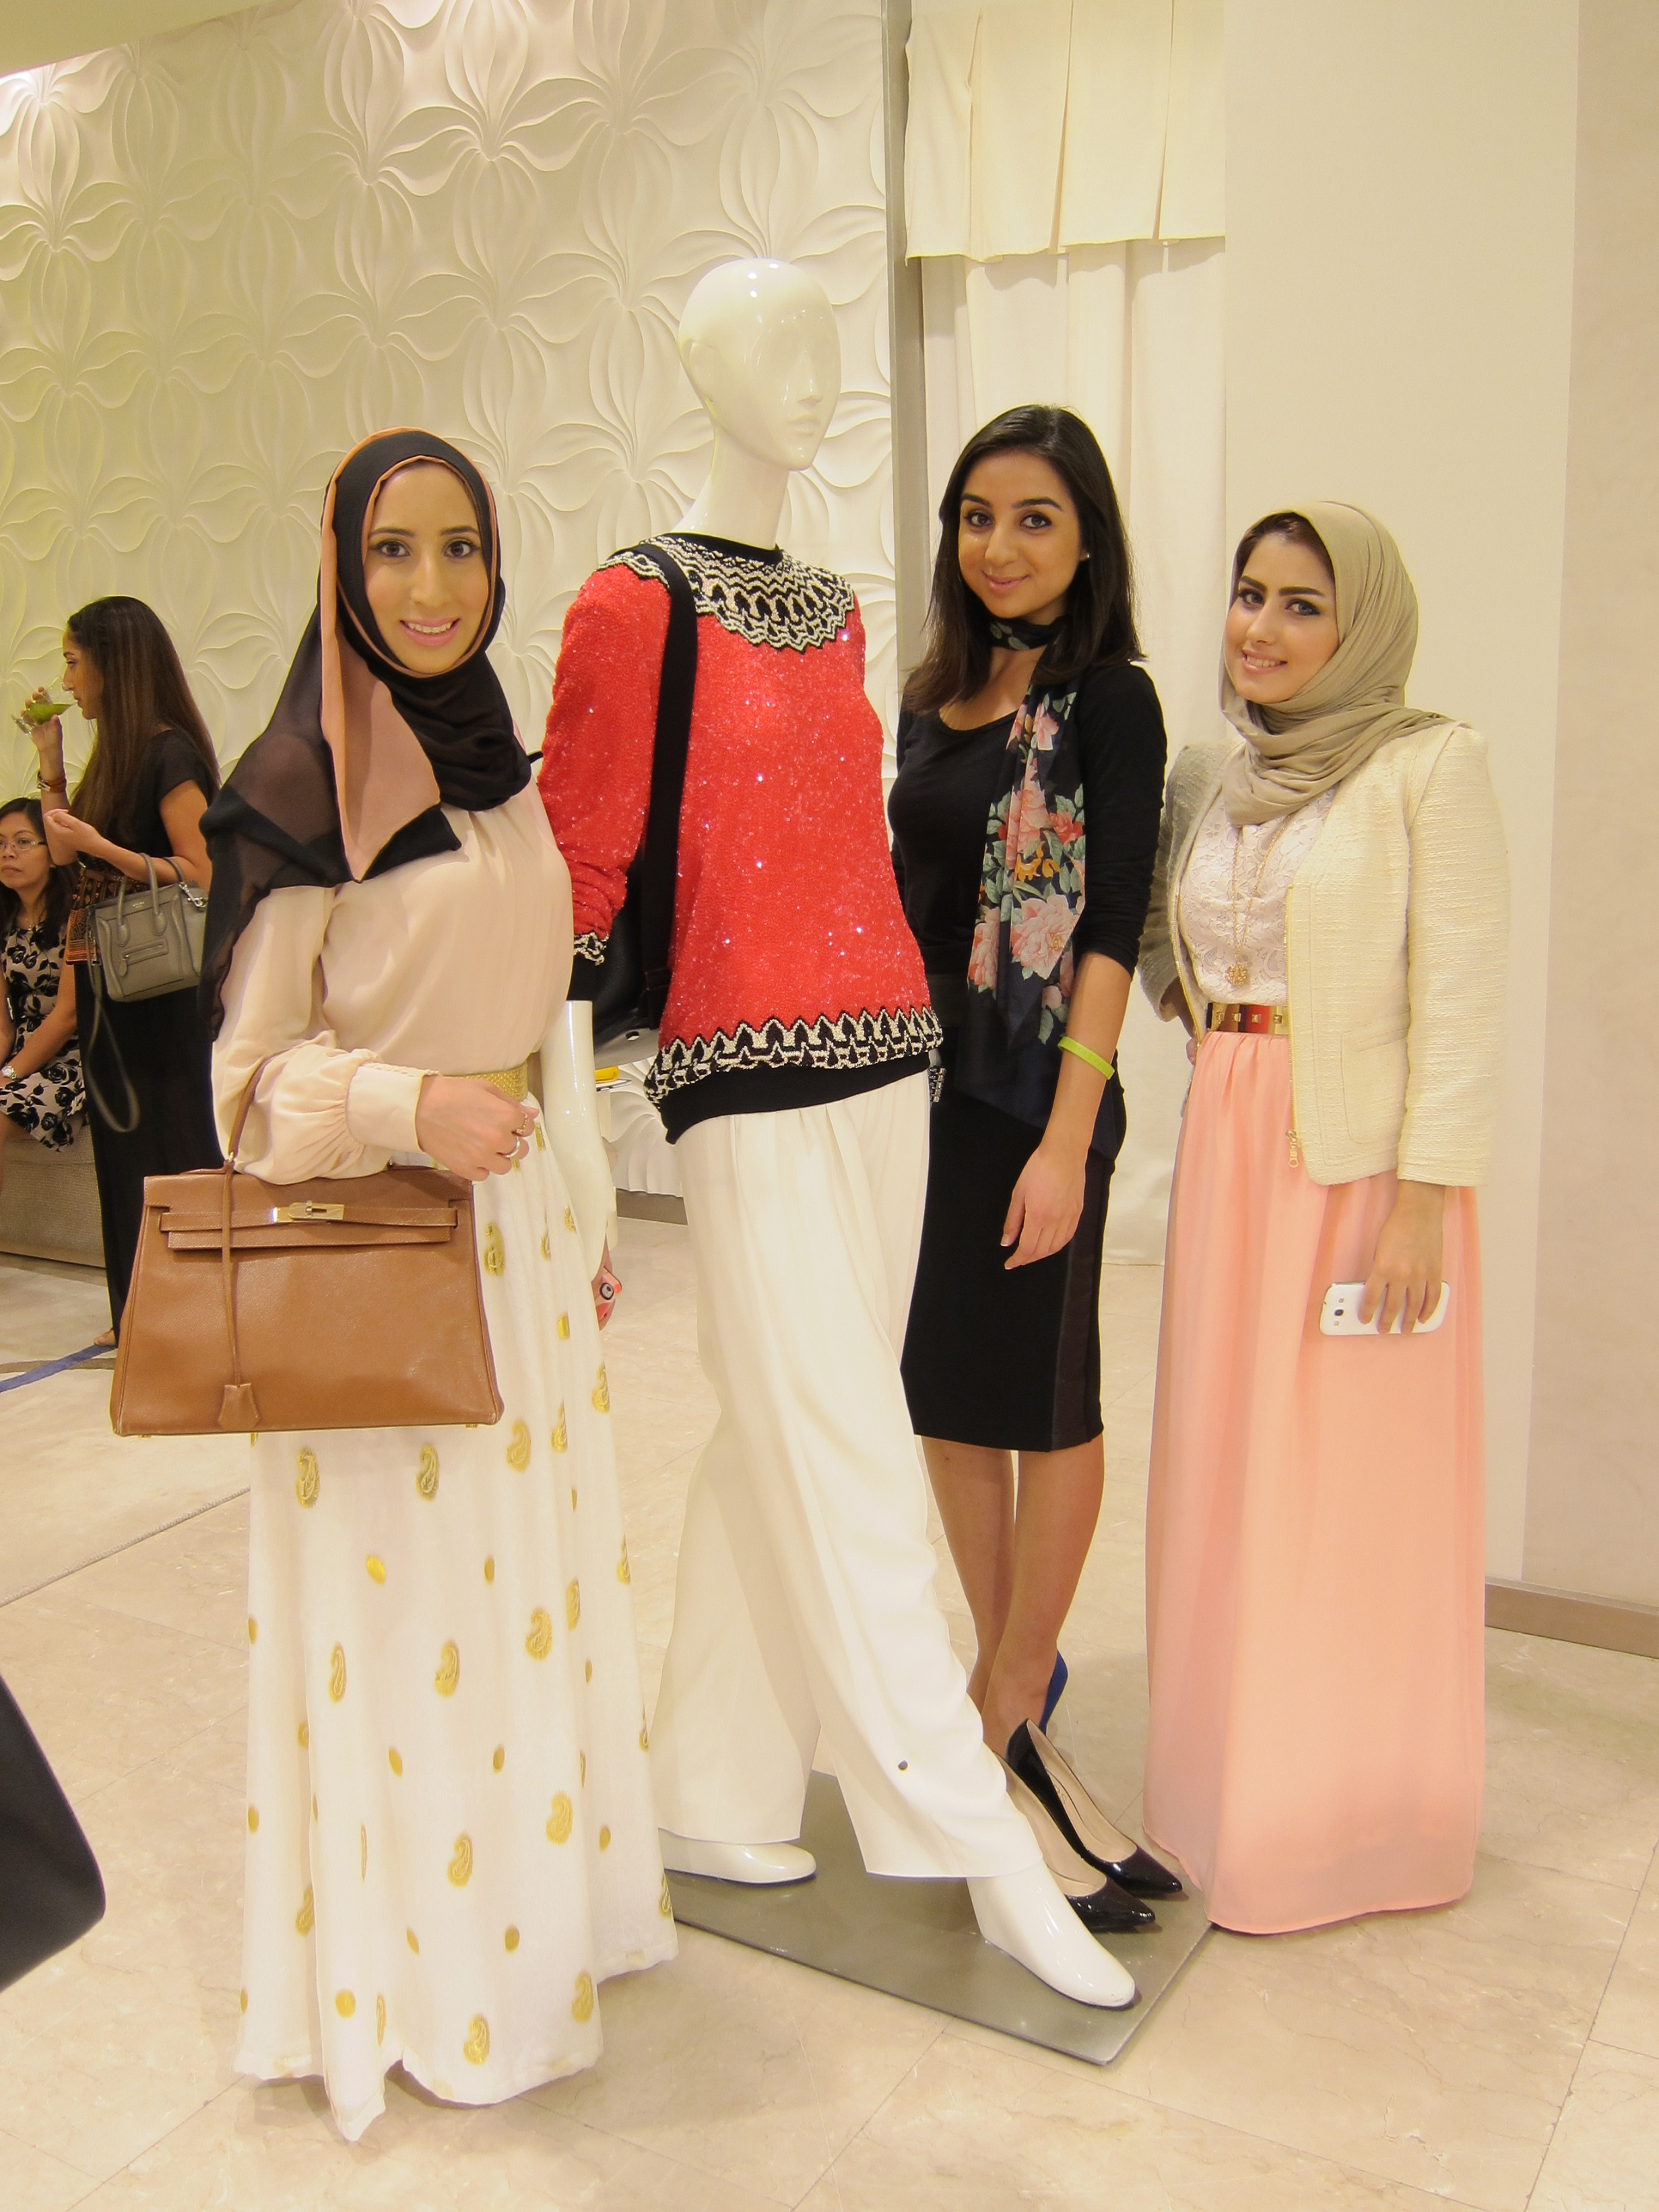 Photo with female mannequin